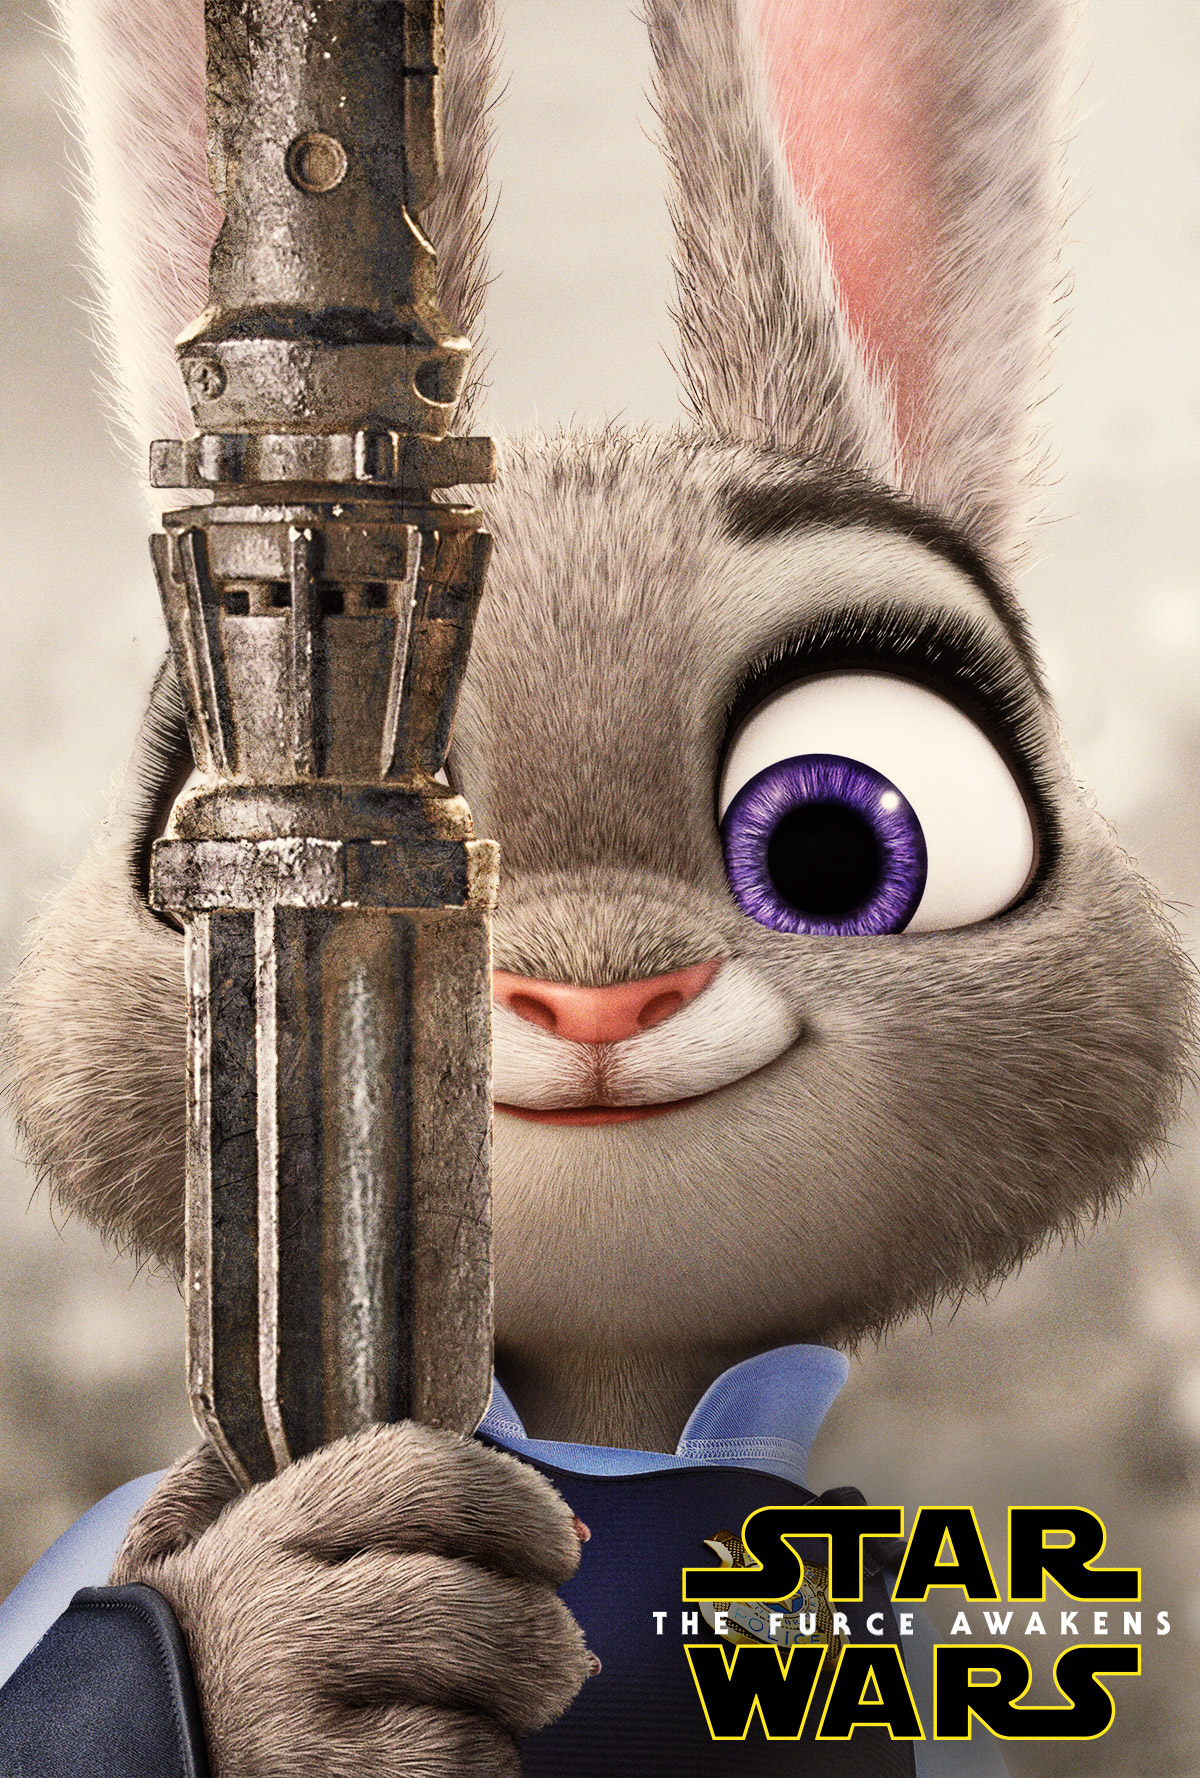 'Zootopia' Themed Parody Posters Add Laughs to Popular Films